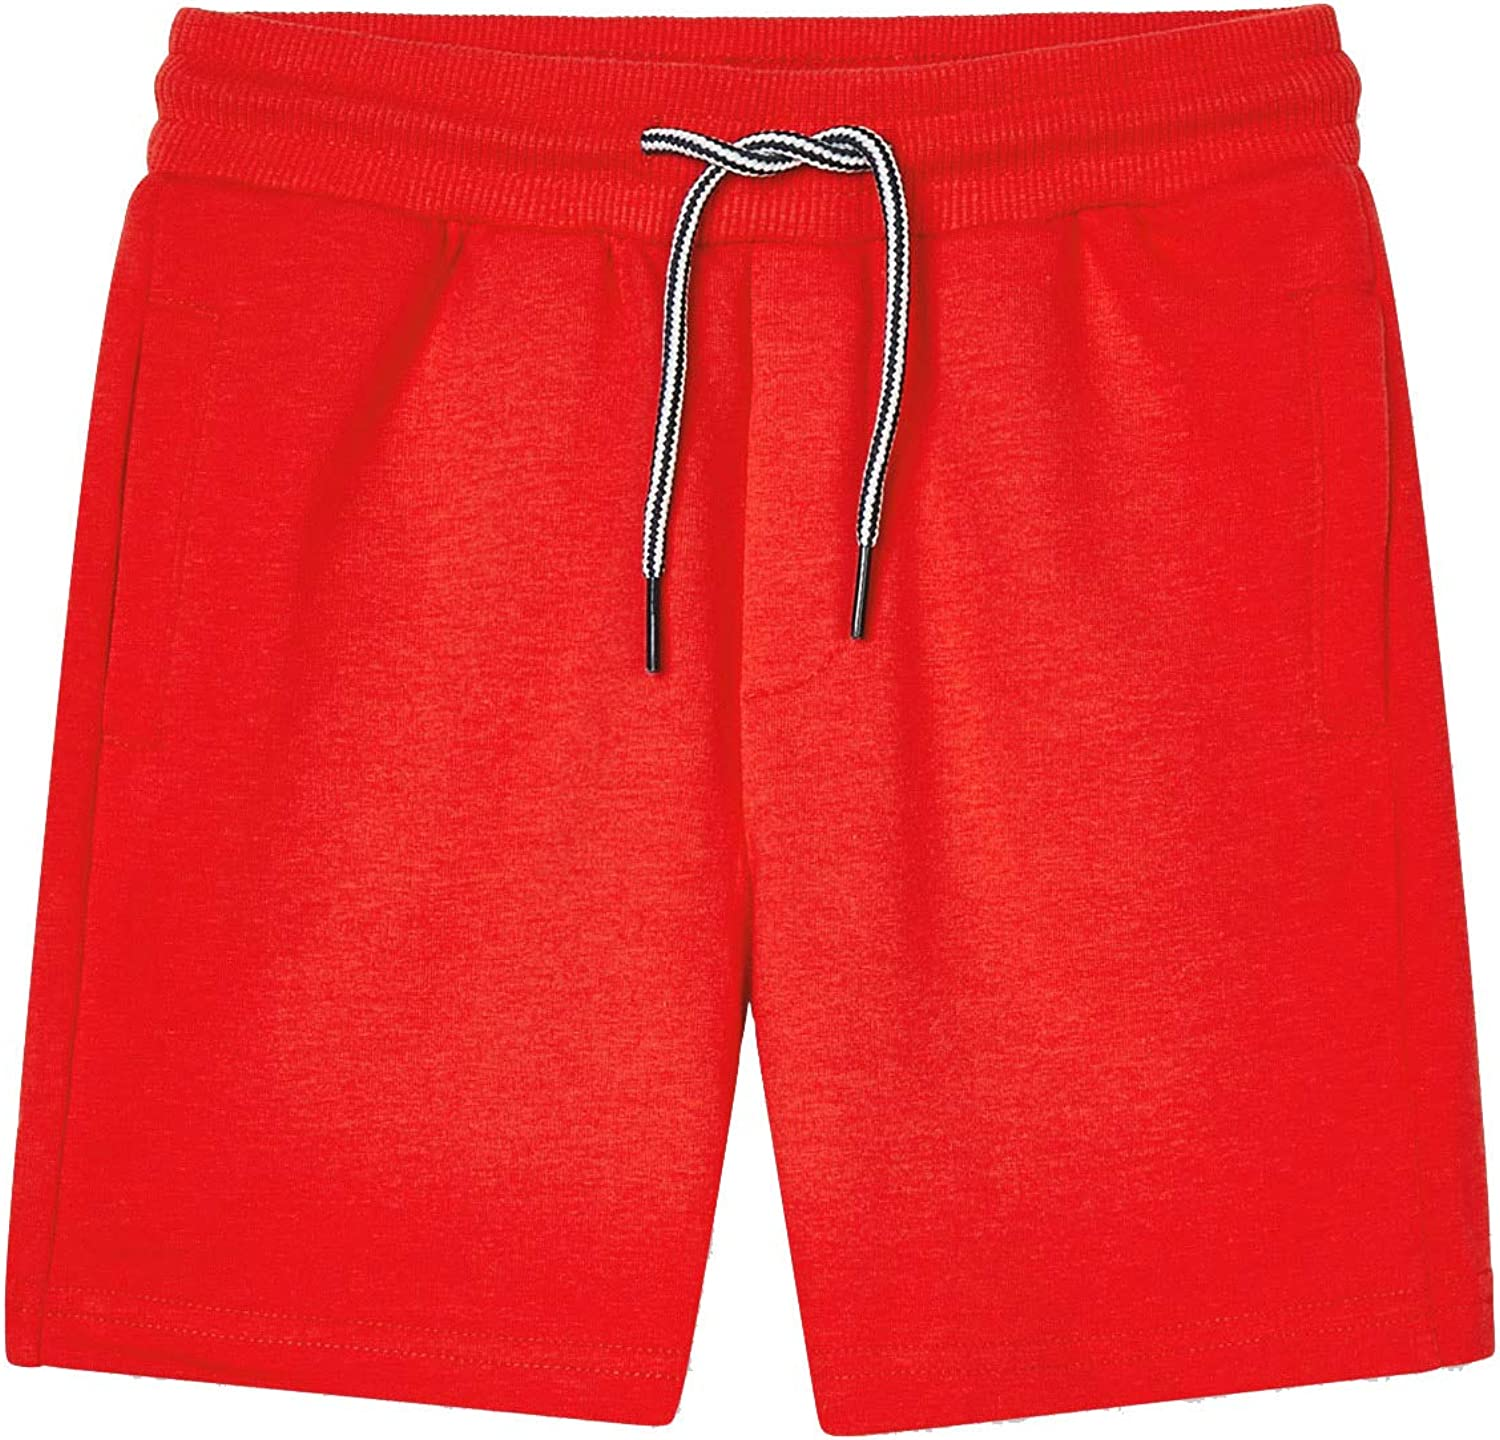 Mayoral - Basic Fleece Shorts for Boys - 0611, Cyber red